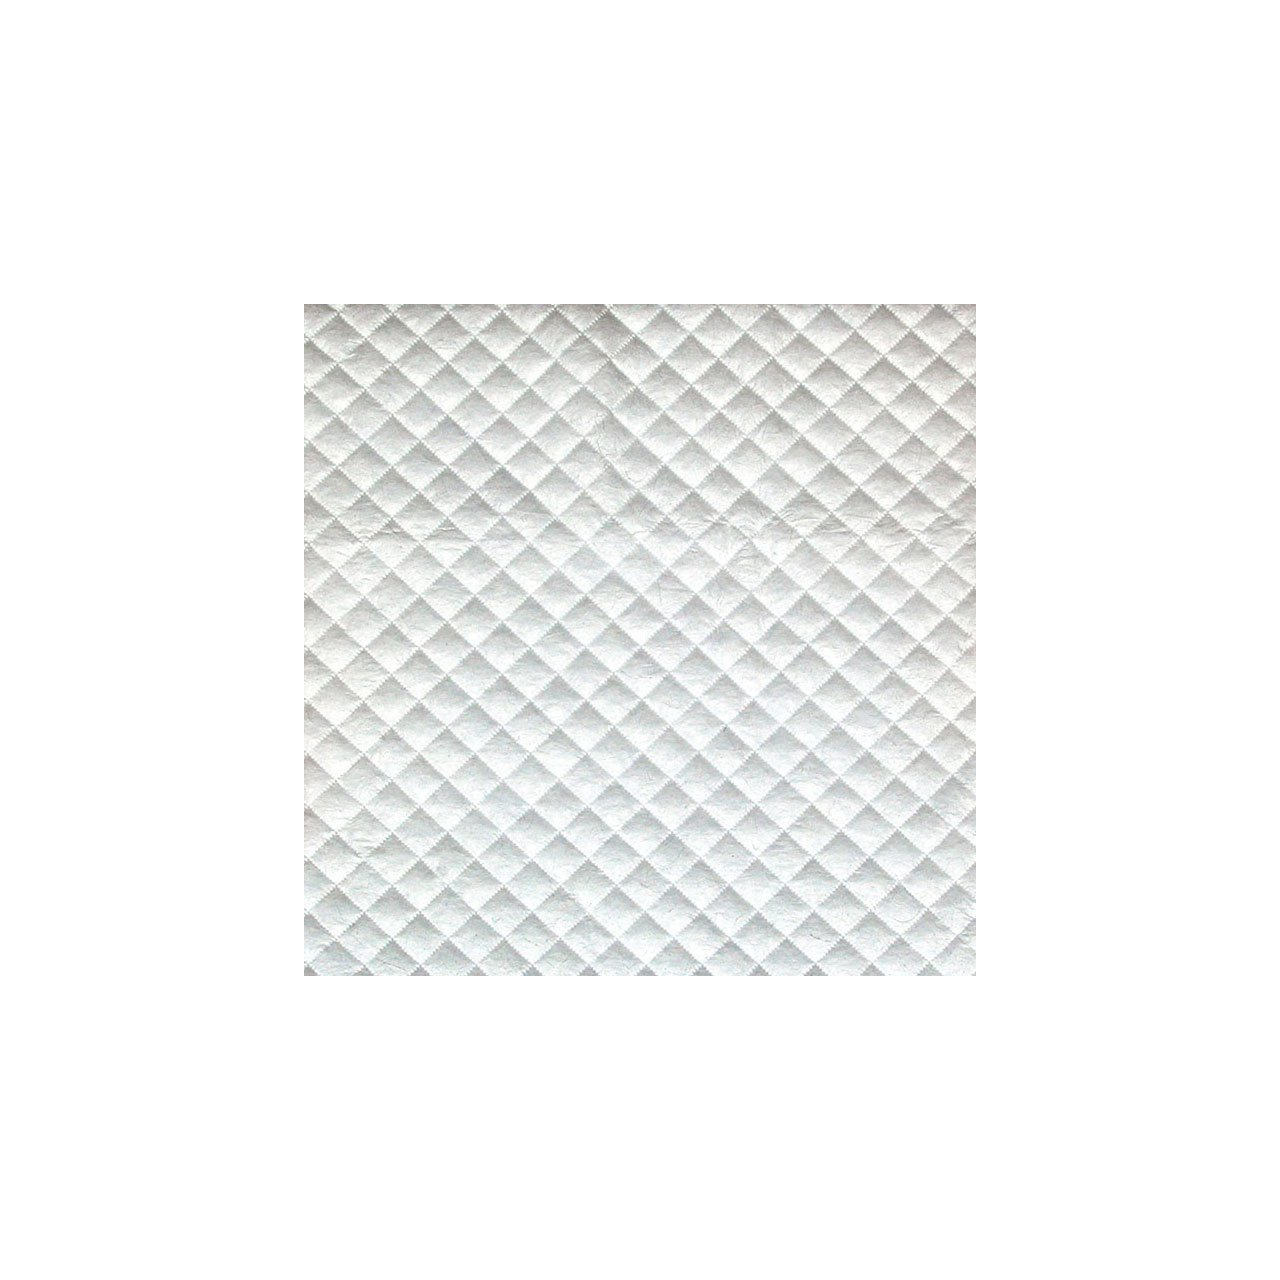 Rayen - 6384 Conditioner Filter - 70 x 35 CM-Easy to install, CAN be cut to size